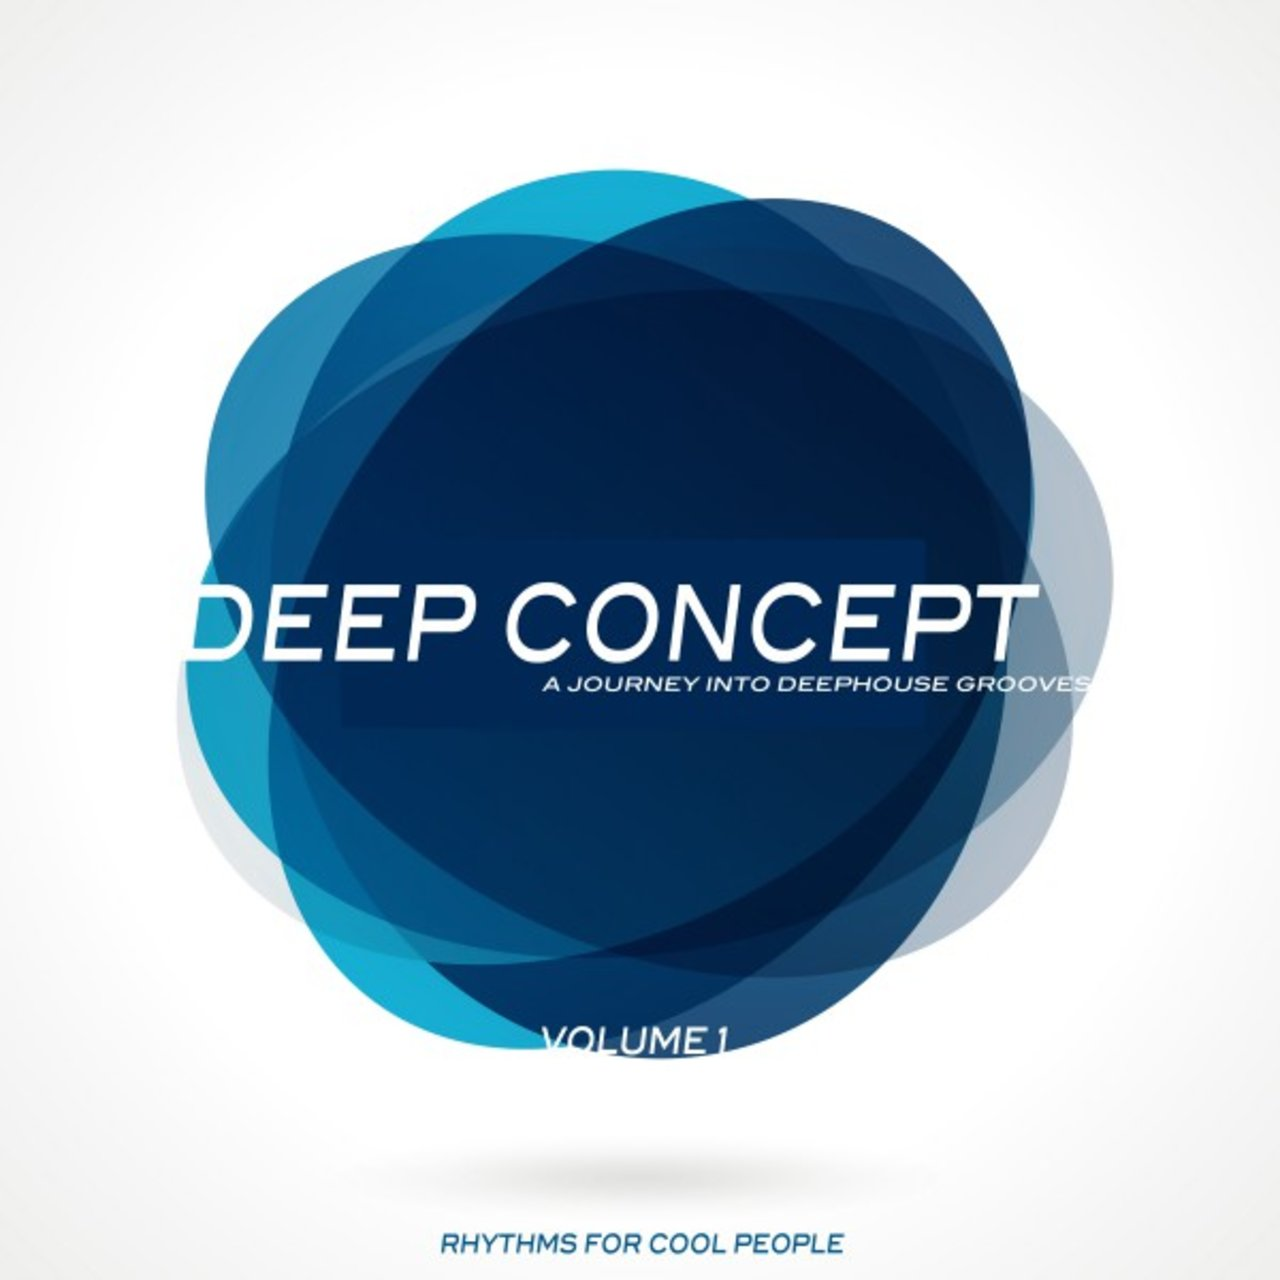 Deep Concept, Vol. 1 (Rhythms for Cool People)